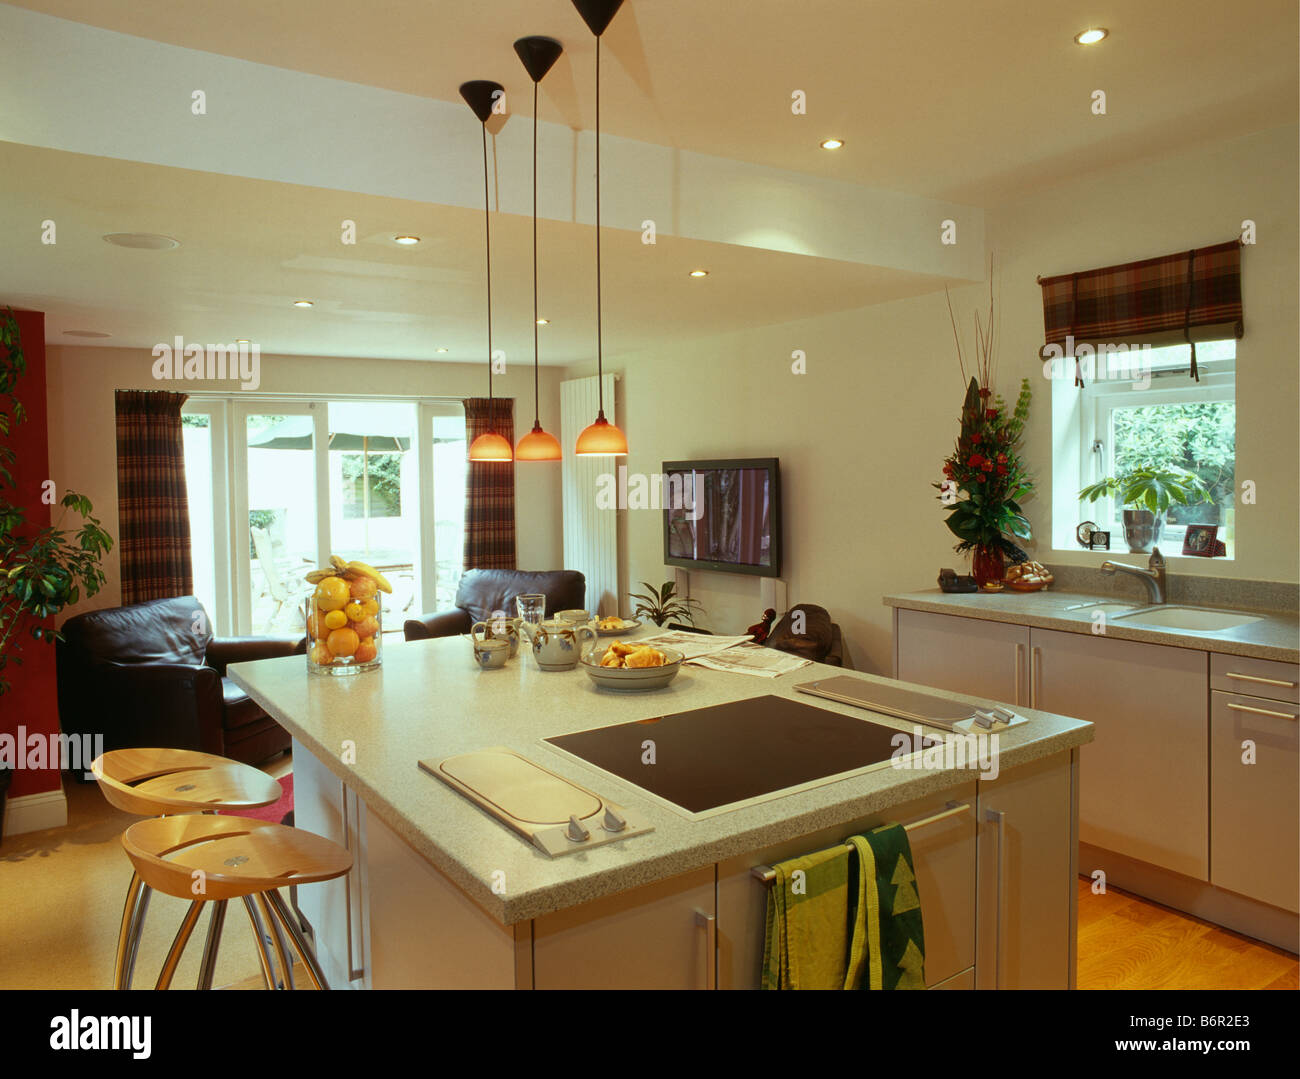 Kitchen island lighting halogen - Small Orange Pendant Lights Above Island Unit With Fitted Halogen Hob In Modern White Kitchen